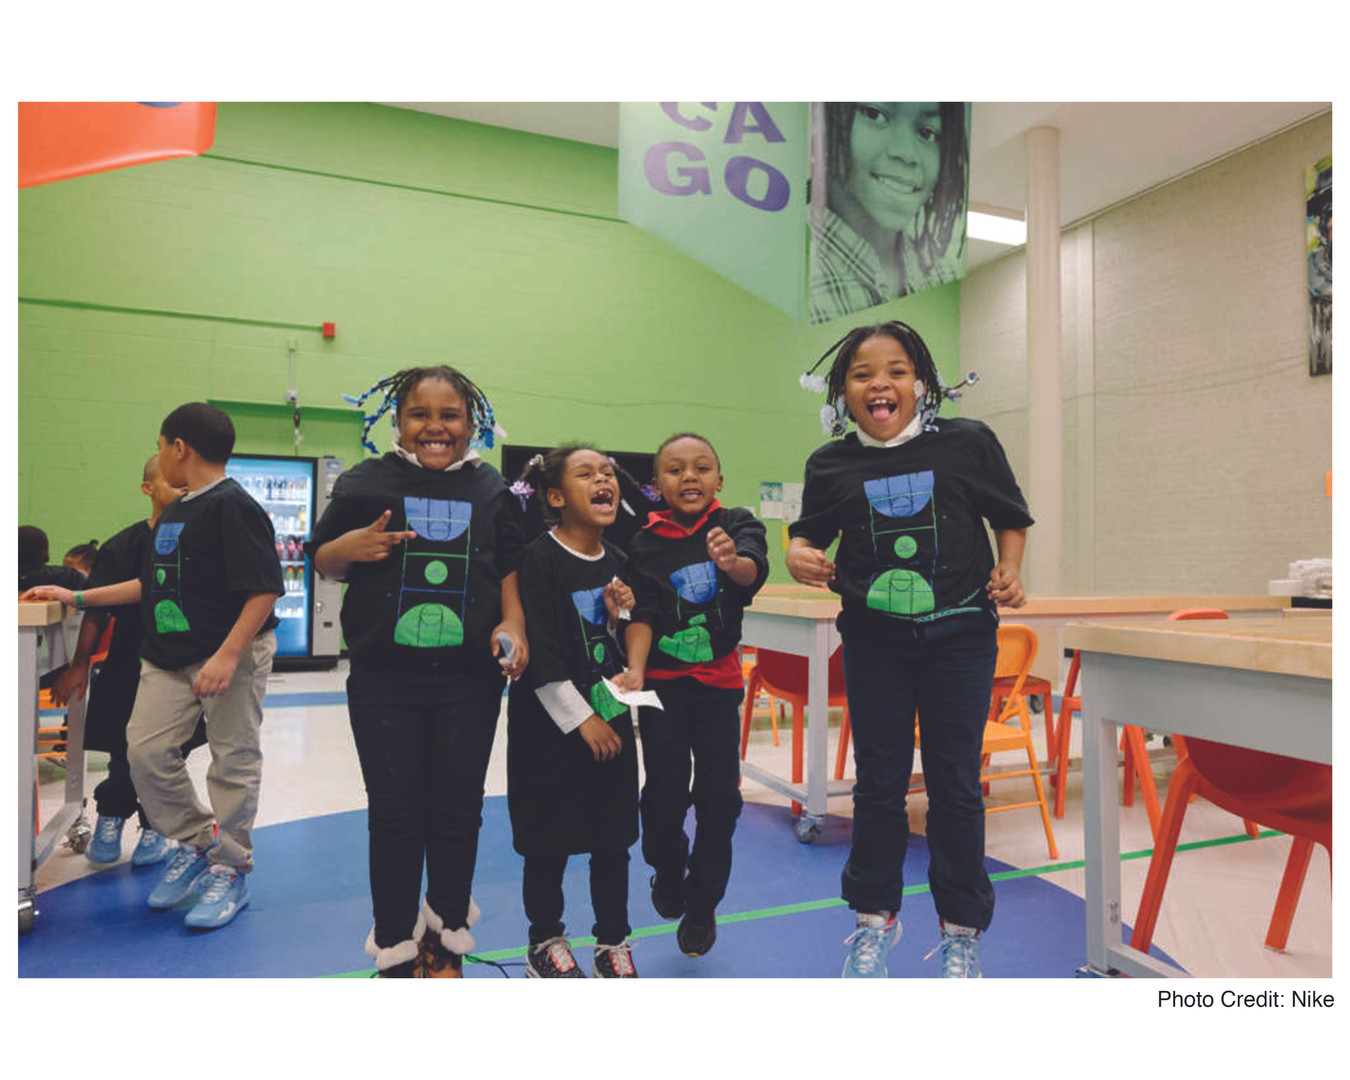 Children attending workshop at their newly refurbished Boys and Girls Club.